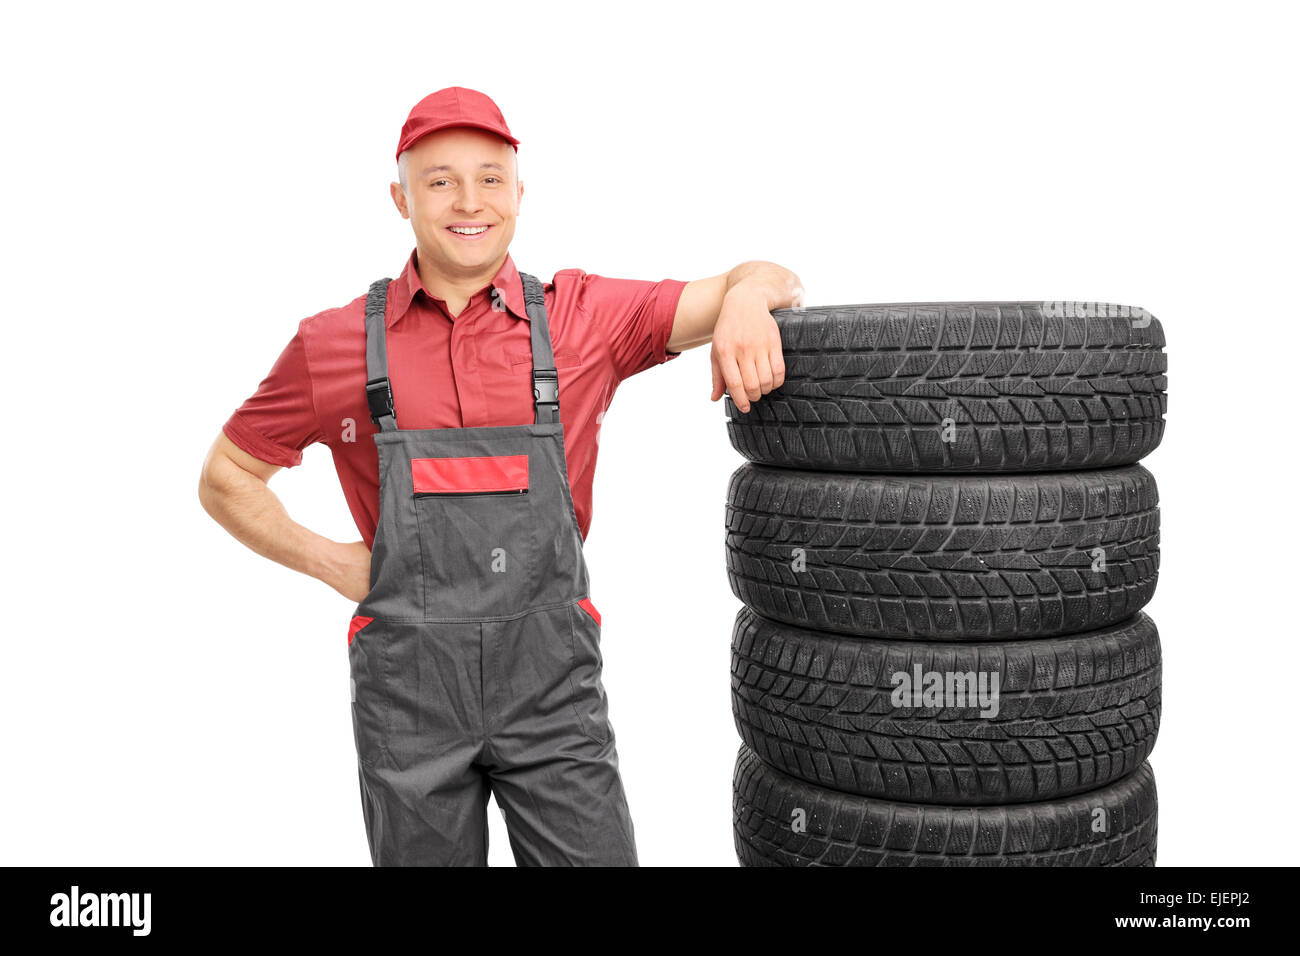 Male mechanic in a red shirt and gray jumpsuit leaning on a stack of tires isolated on white background - Stock Image